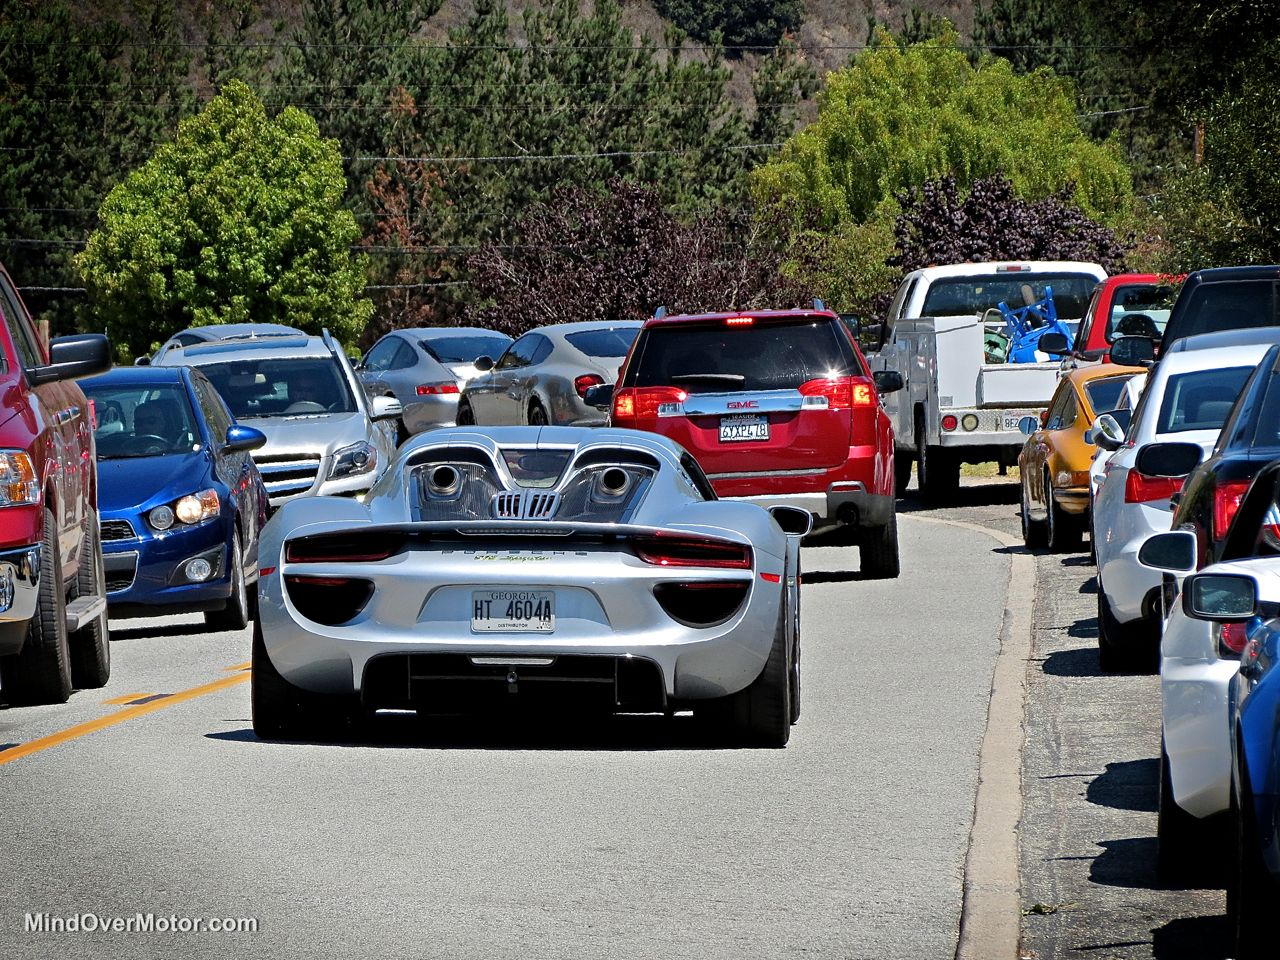 Porsche 918 Spyder in Carmel Valley